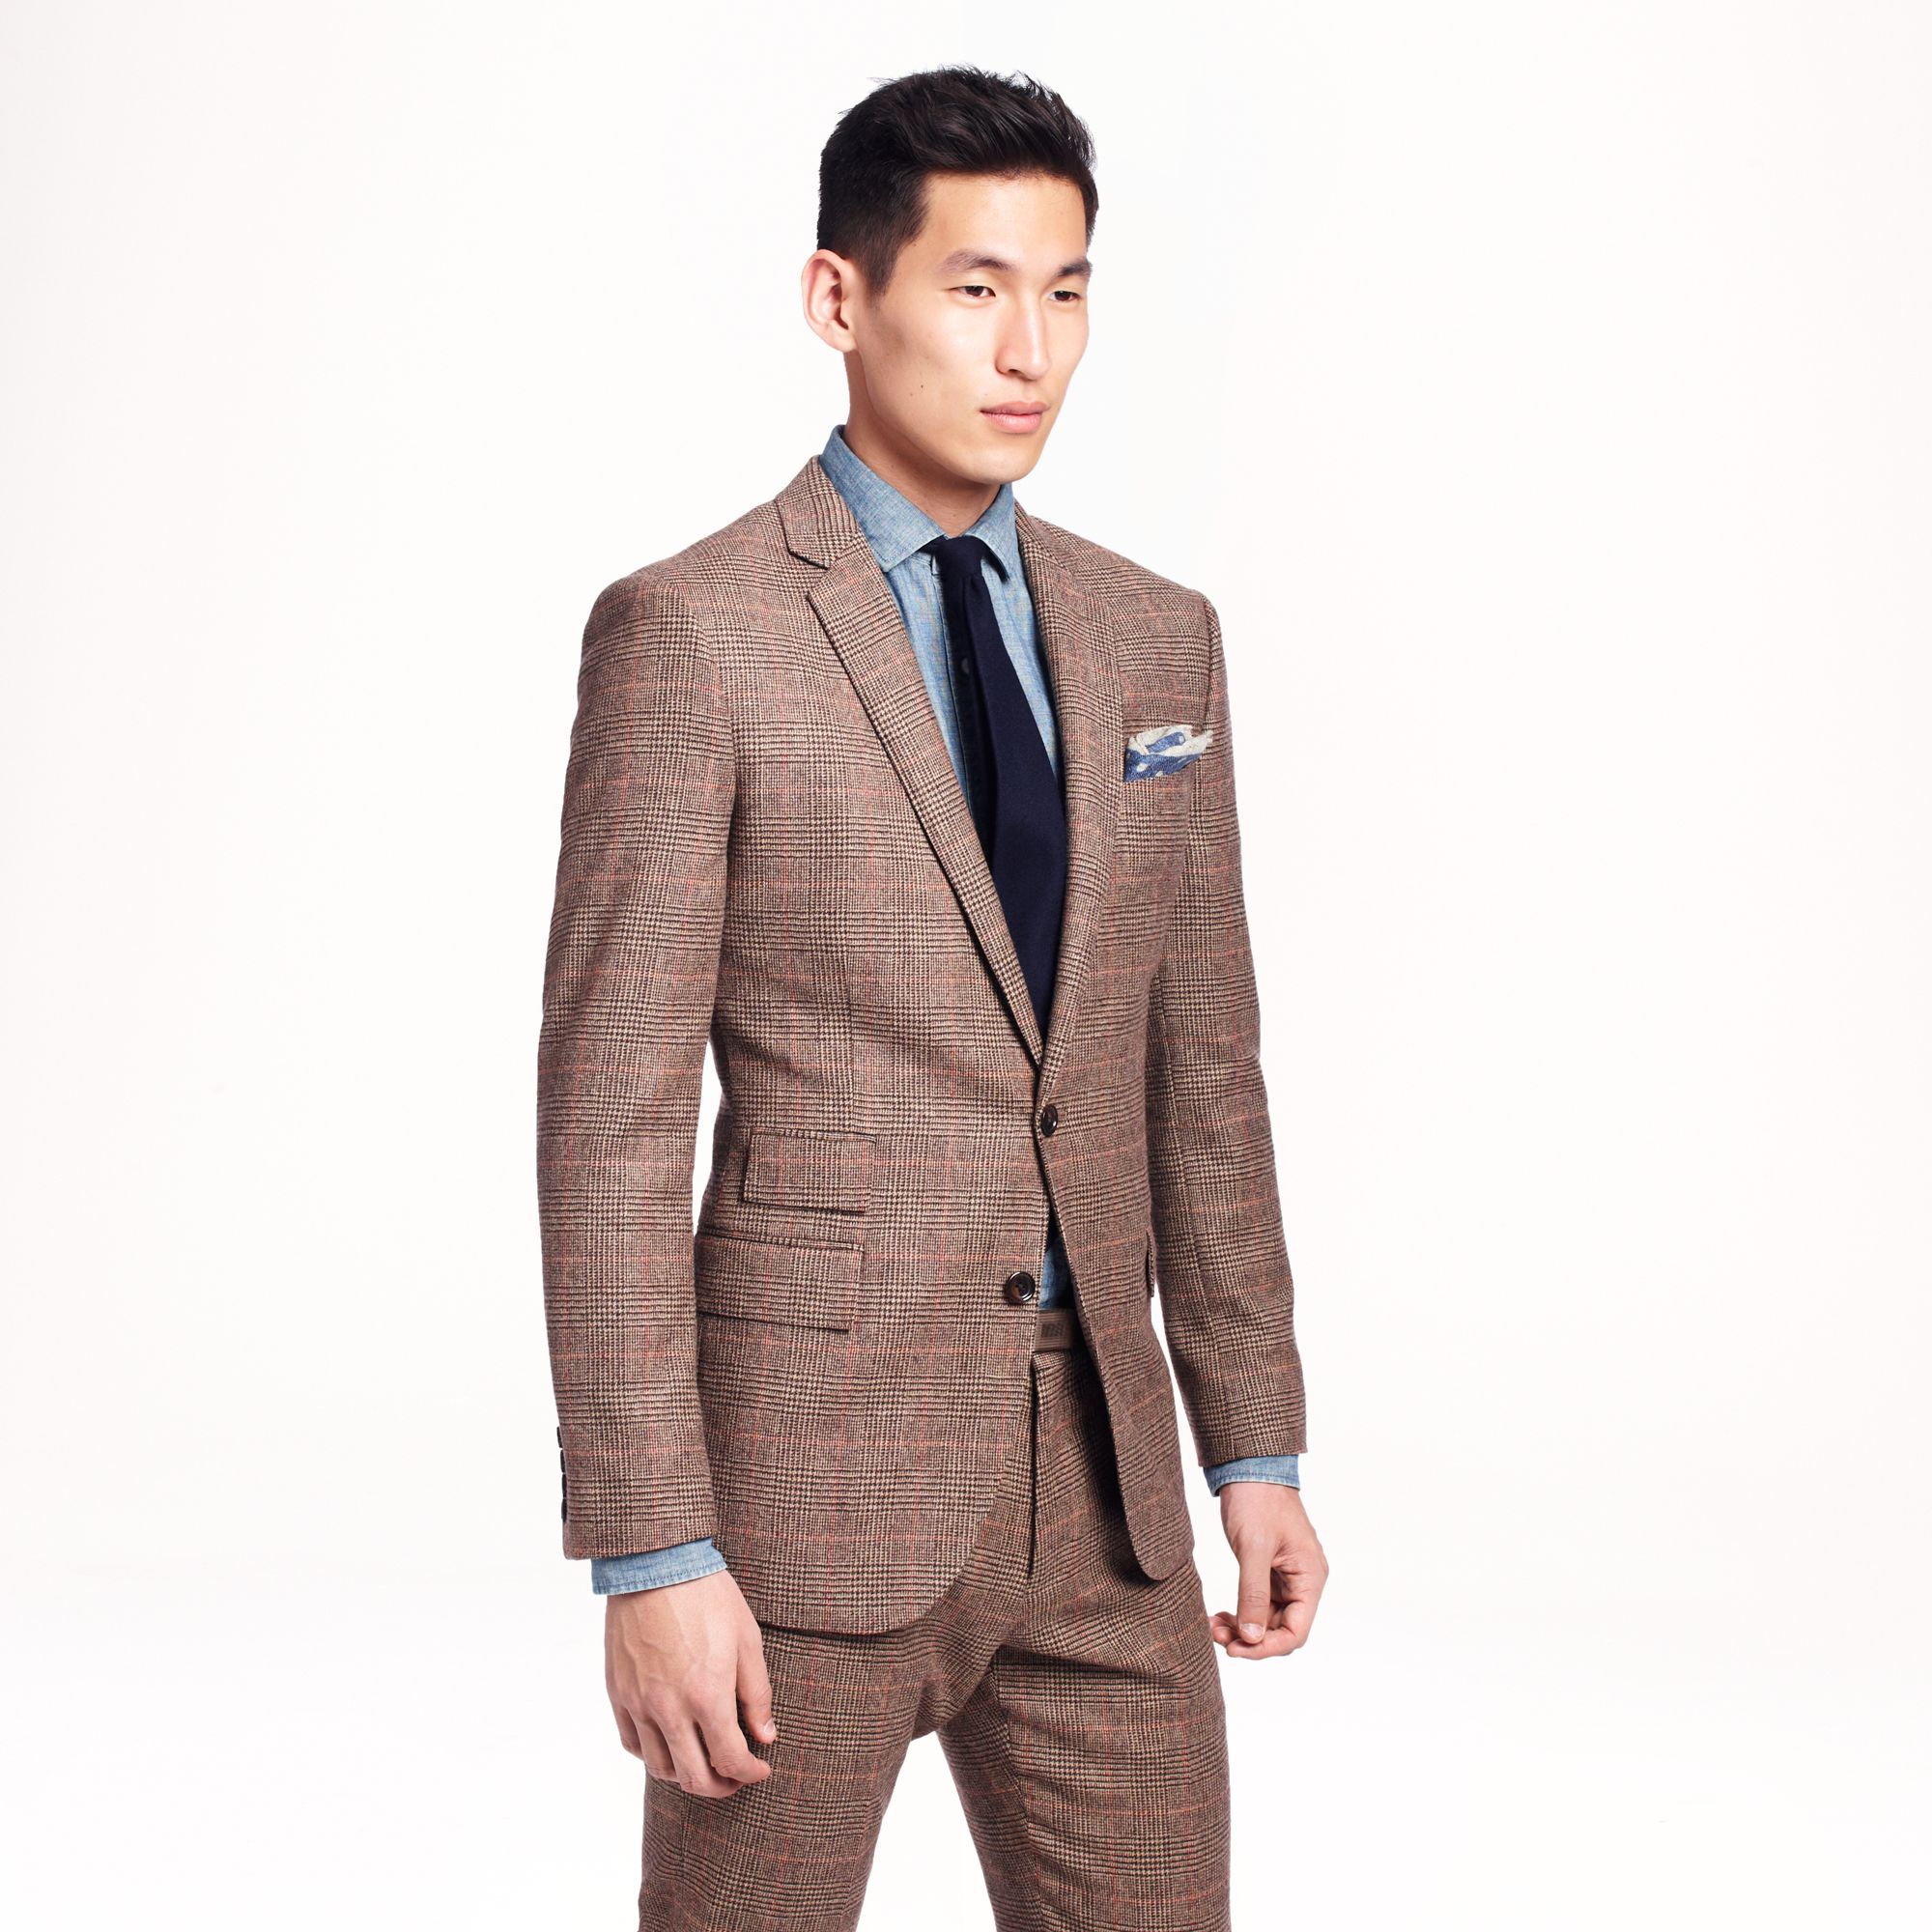 J.crew Ludlow Suit Jacket with Double Vent in Glen Plaid English ...